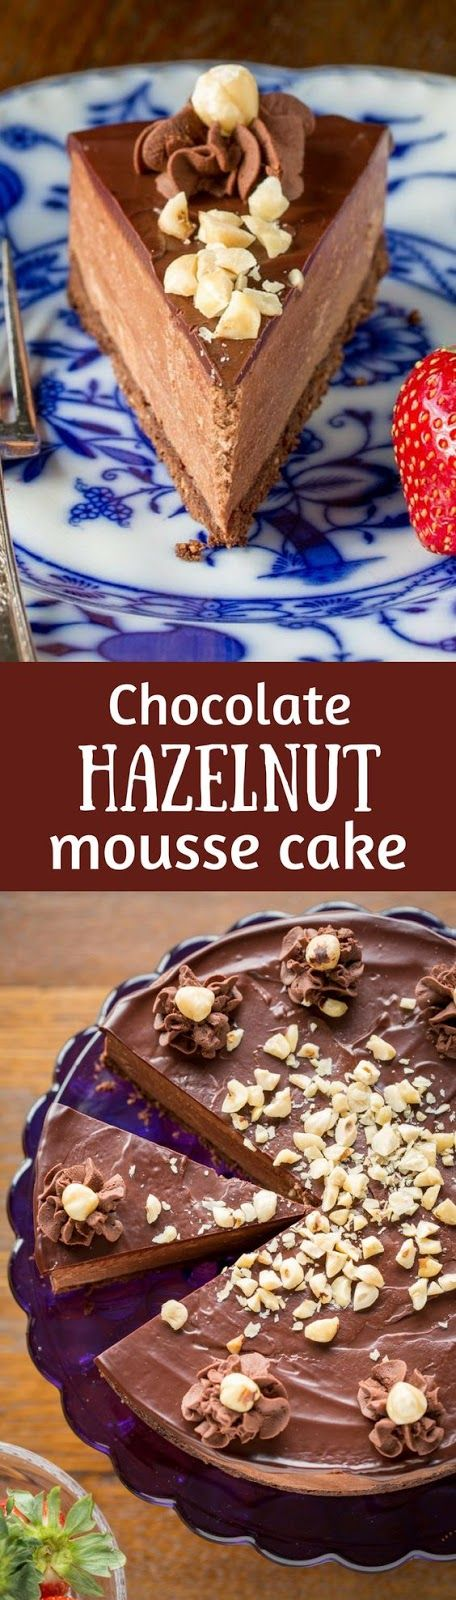 Chocolate Hazelnut Mousse Cake | Cake And Food Recipe